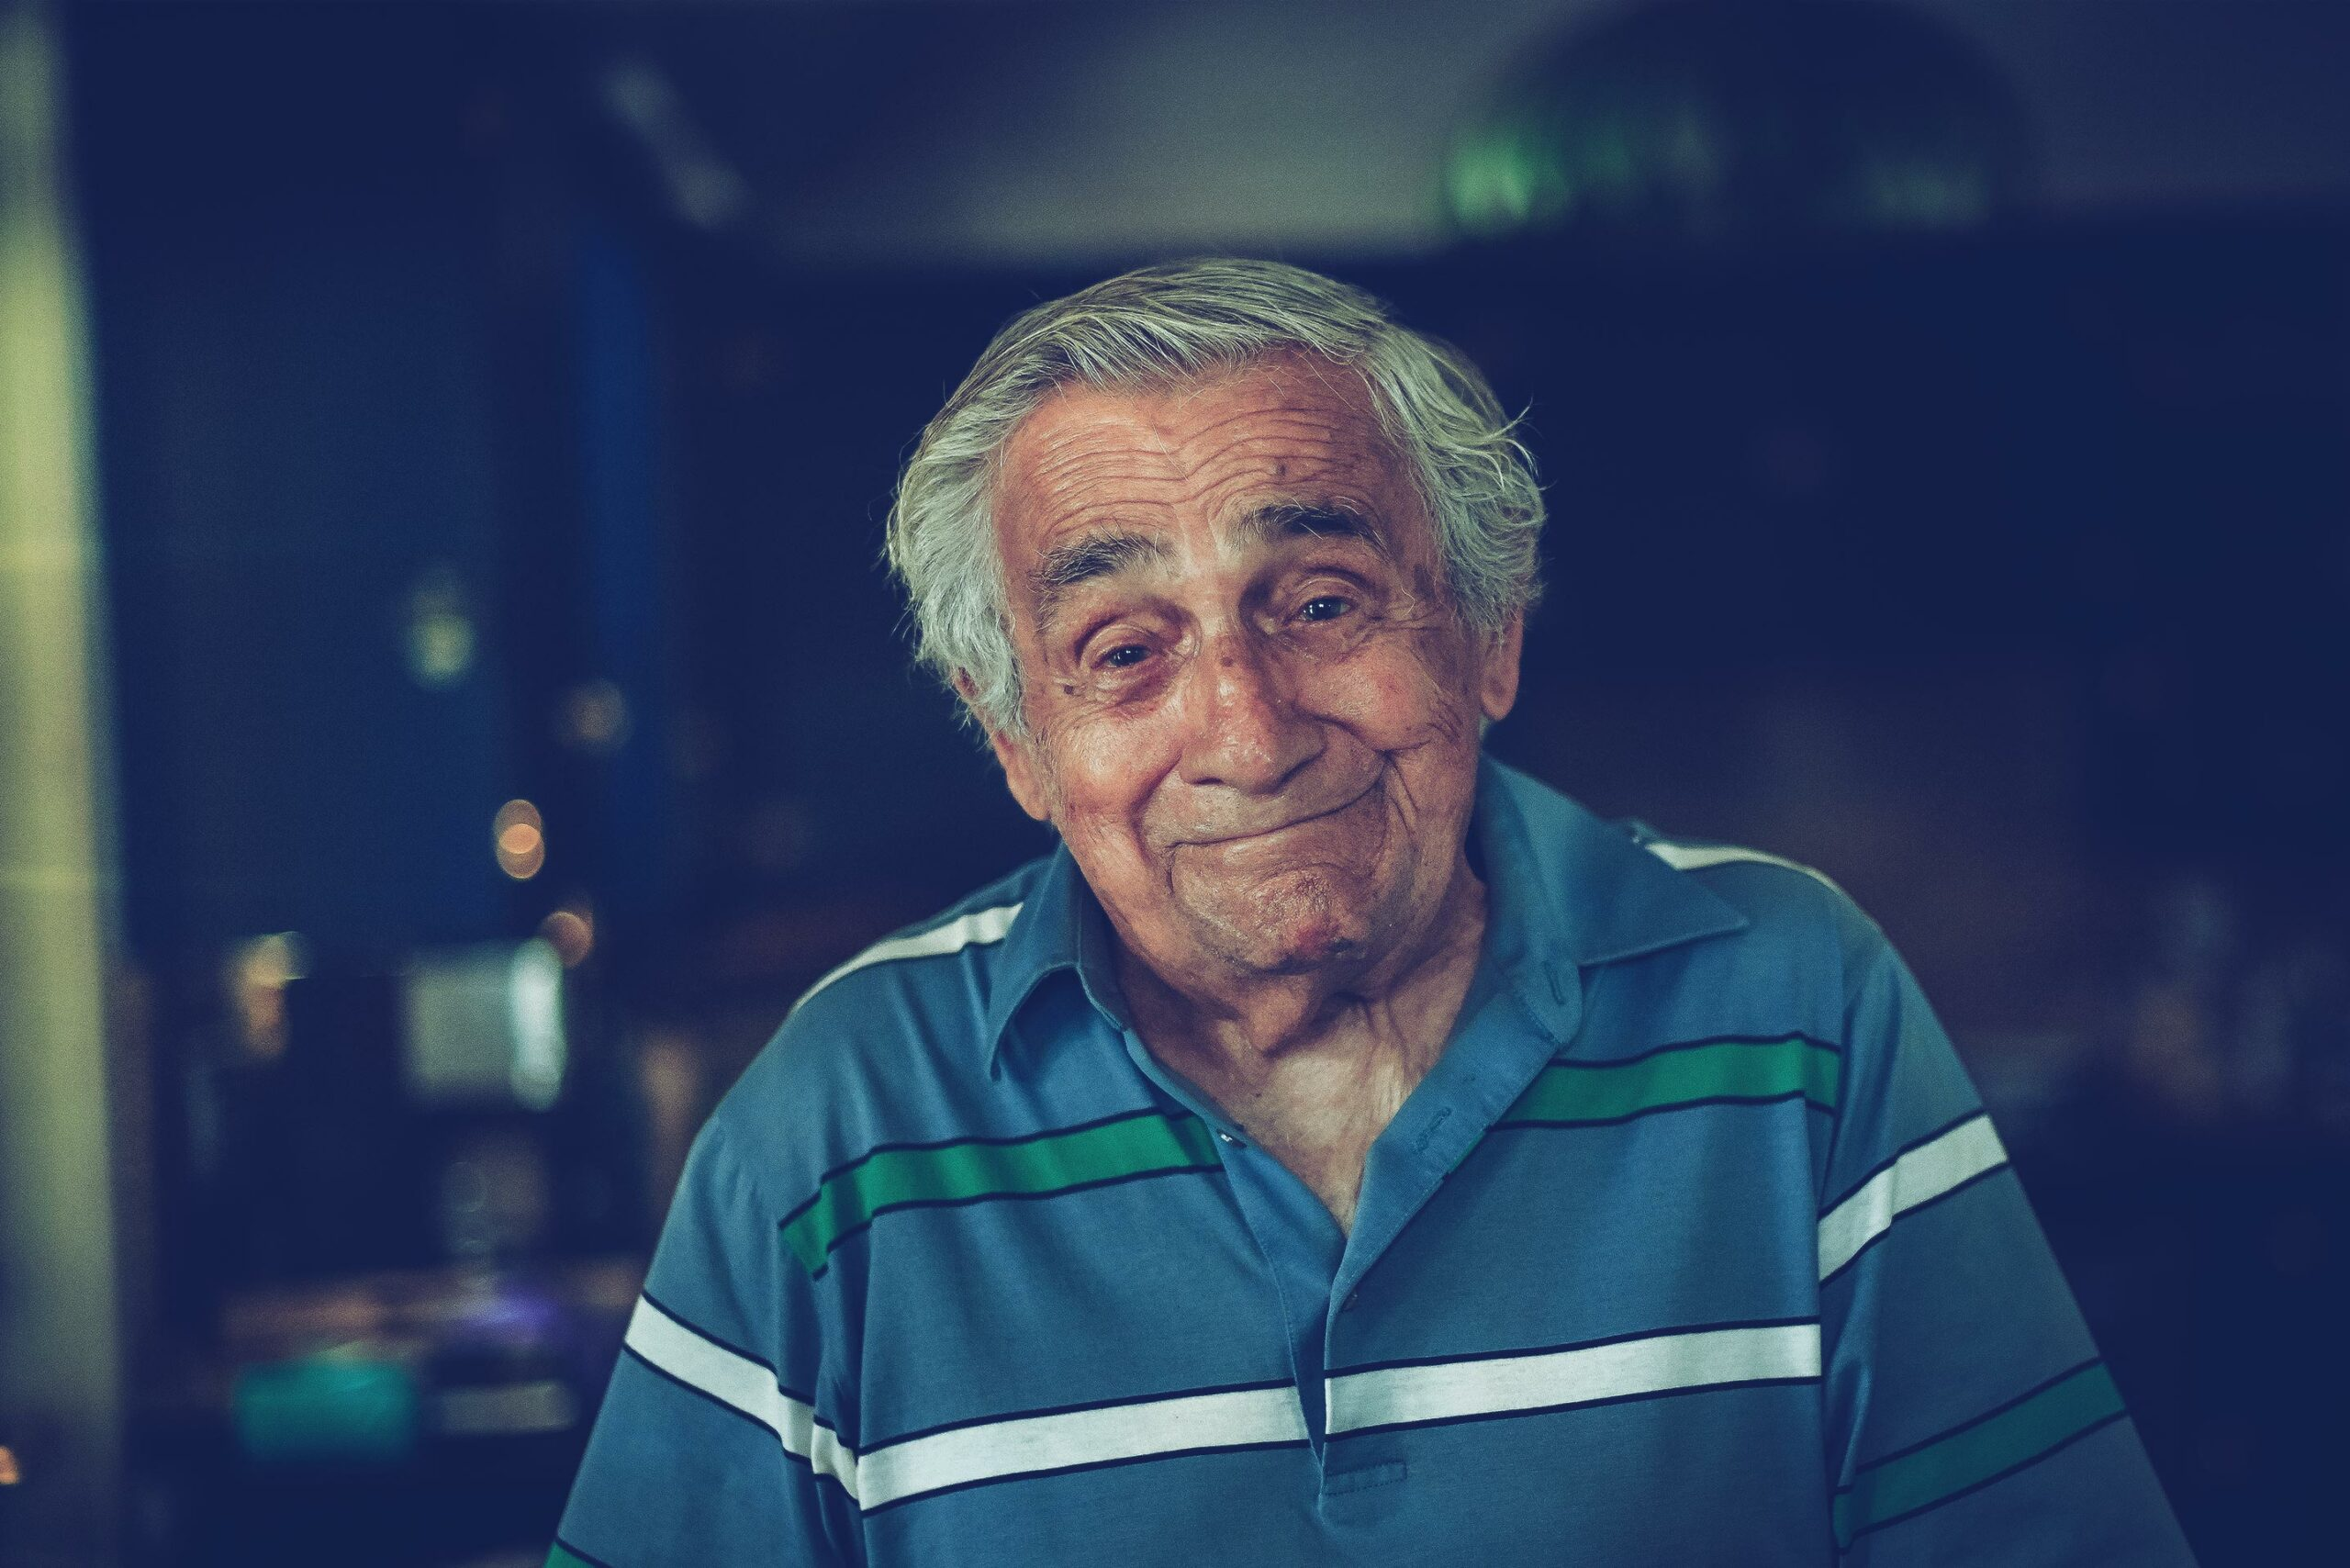 Elderly man in front smiling - Photo Grand Ami